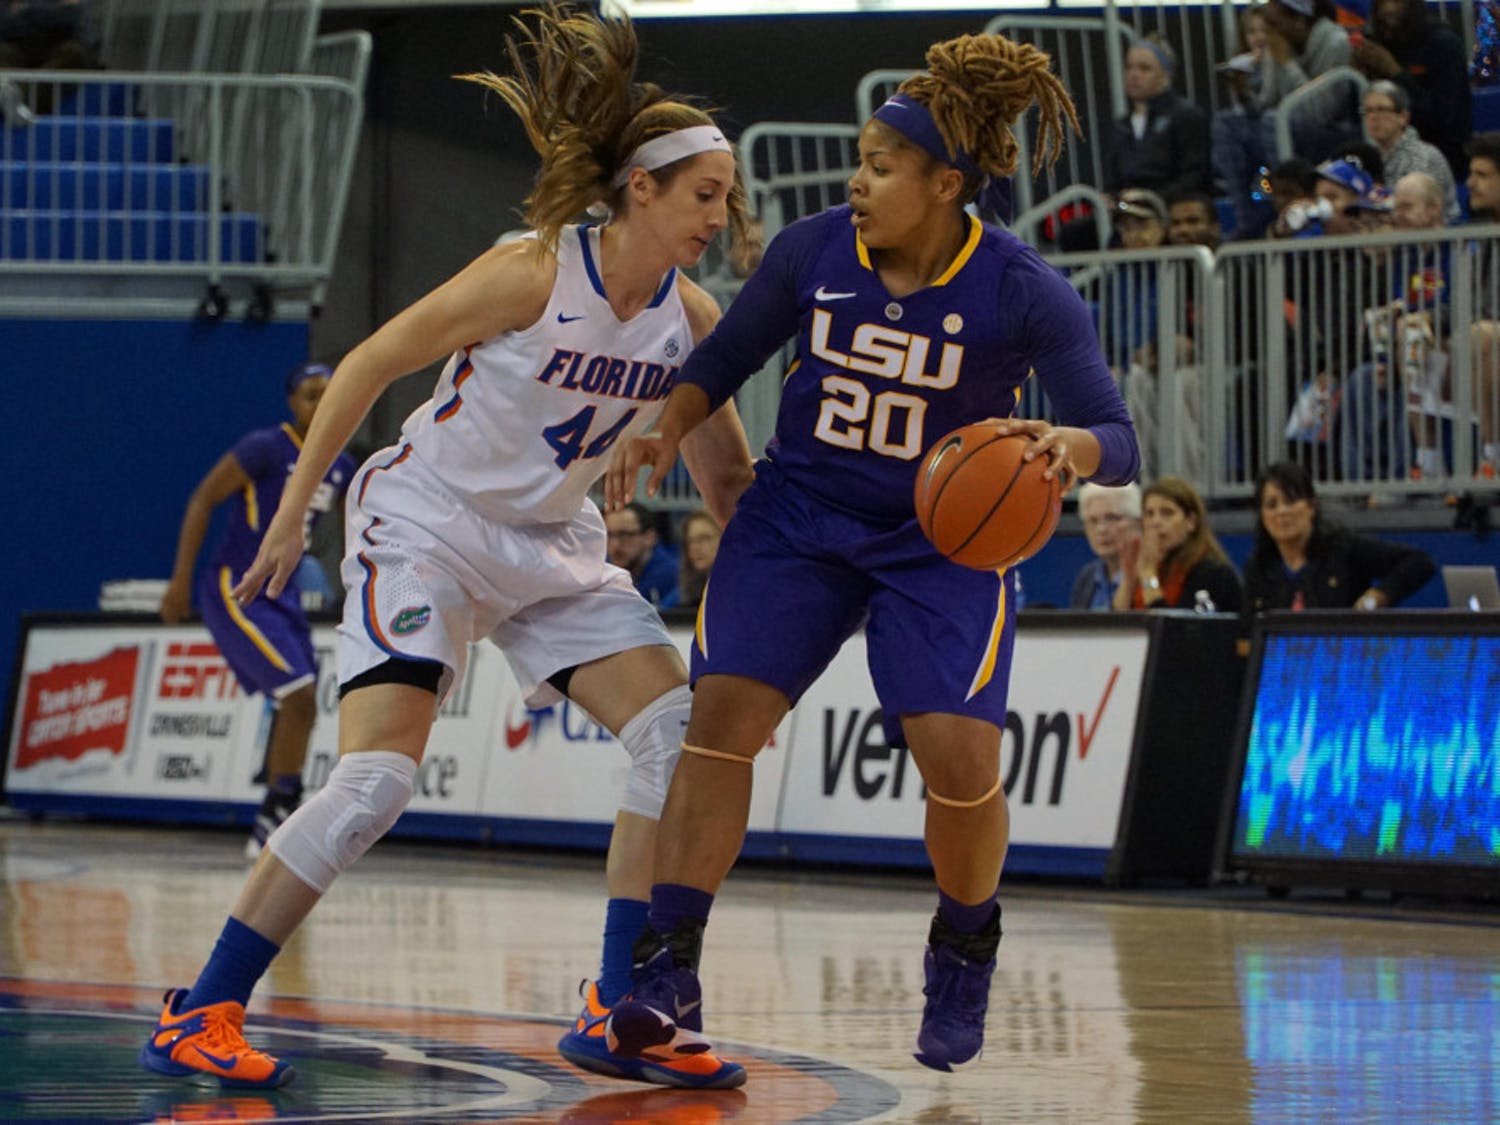 UF forward Haley Lorenzen guards LSU's Alexis Hyderduring Florida's 53-45 win against LSU on Jan. 17, 2016, in the O'Connell Center.